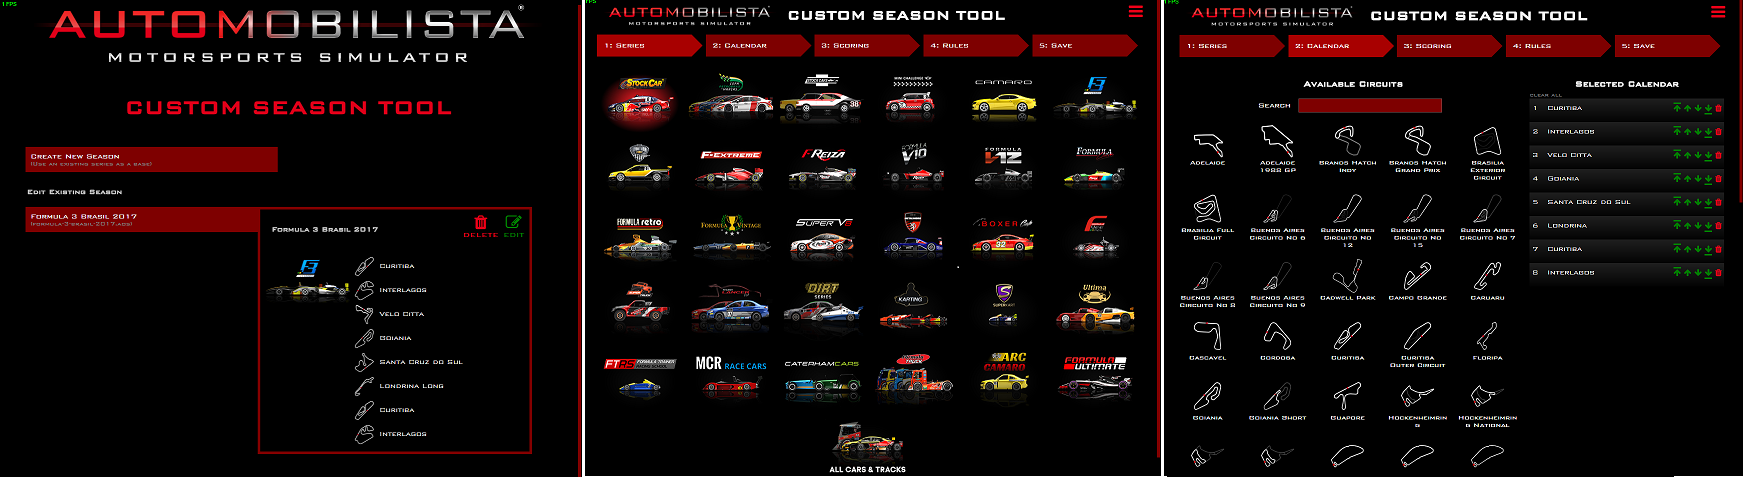 AMS Custom Season Tool.png